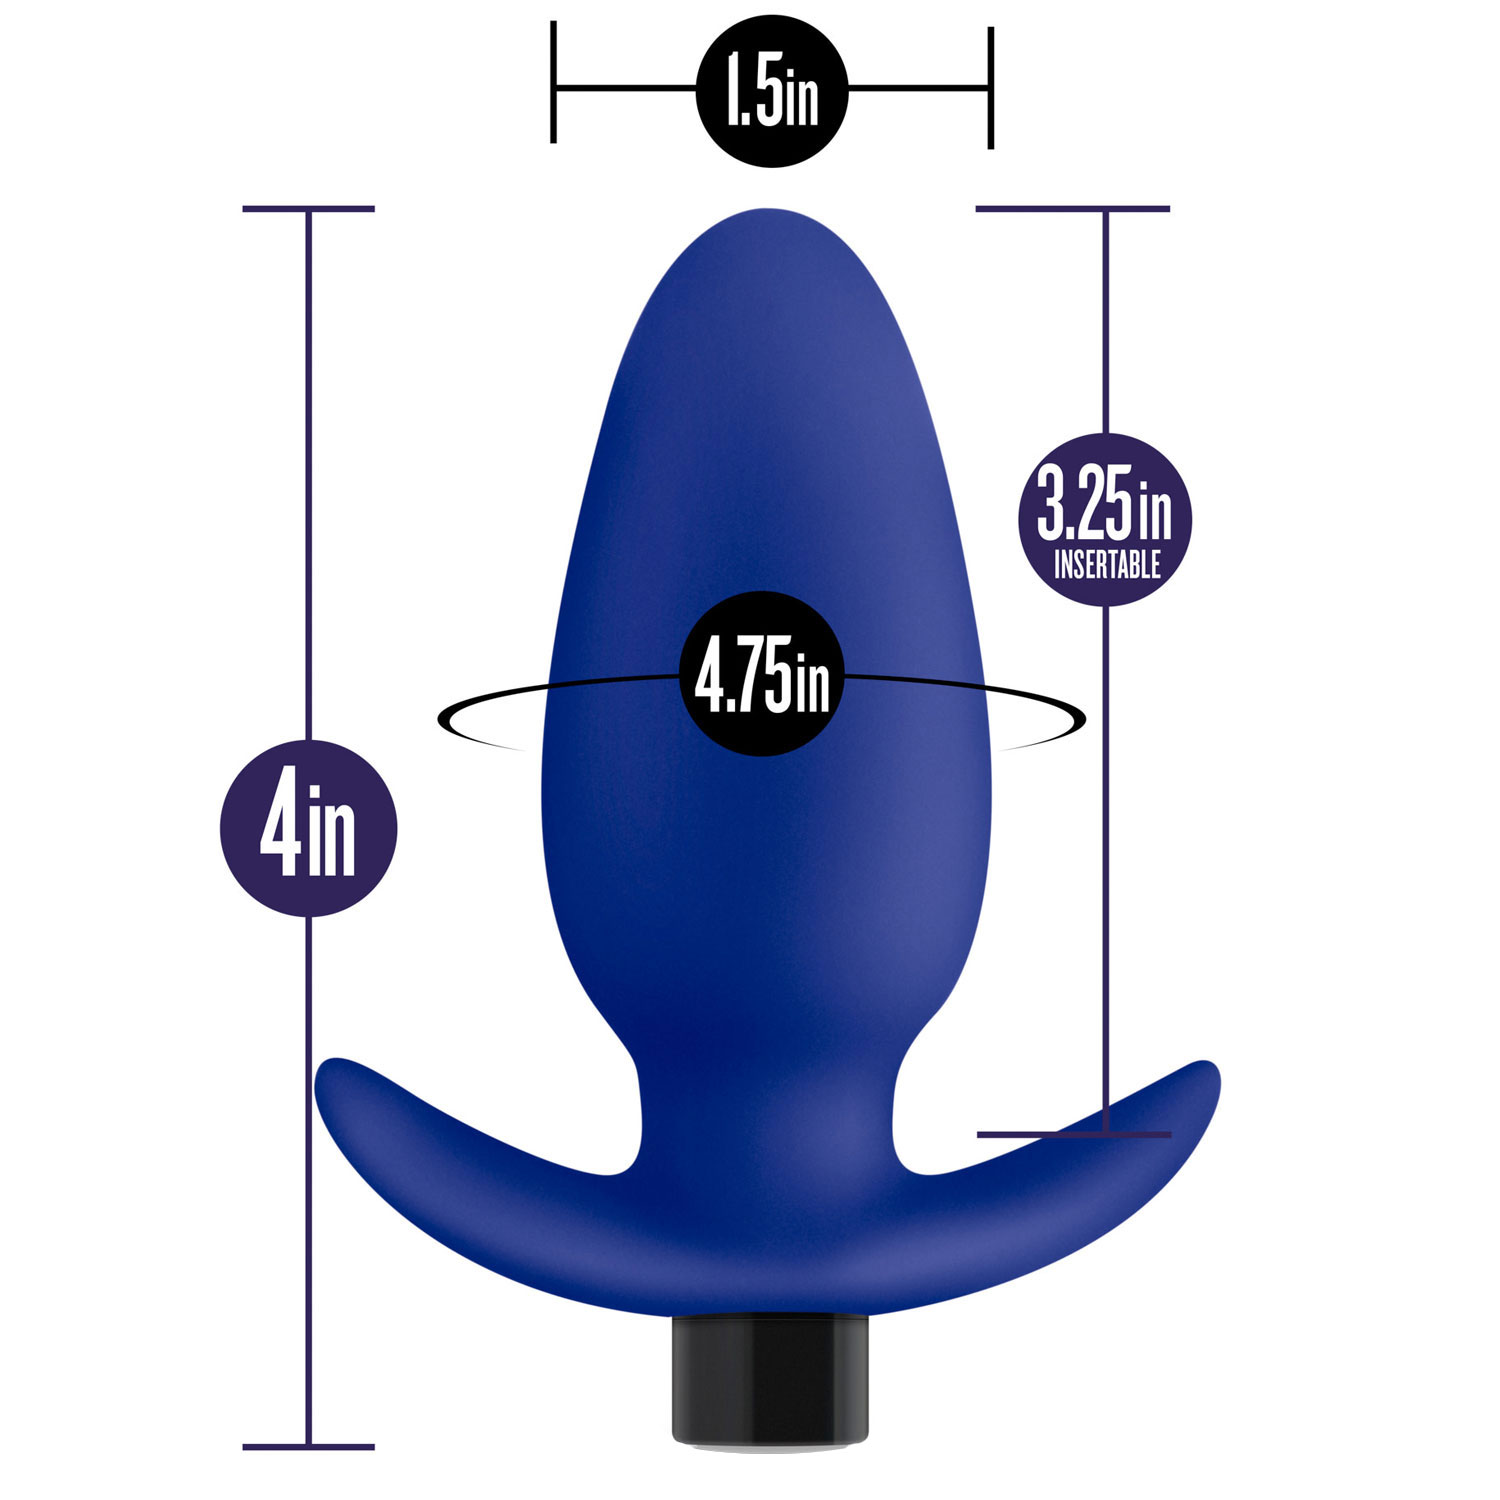 Performance Plus Turbo Rechargeable Silicone Butt Plug - Measurements